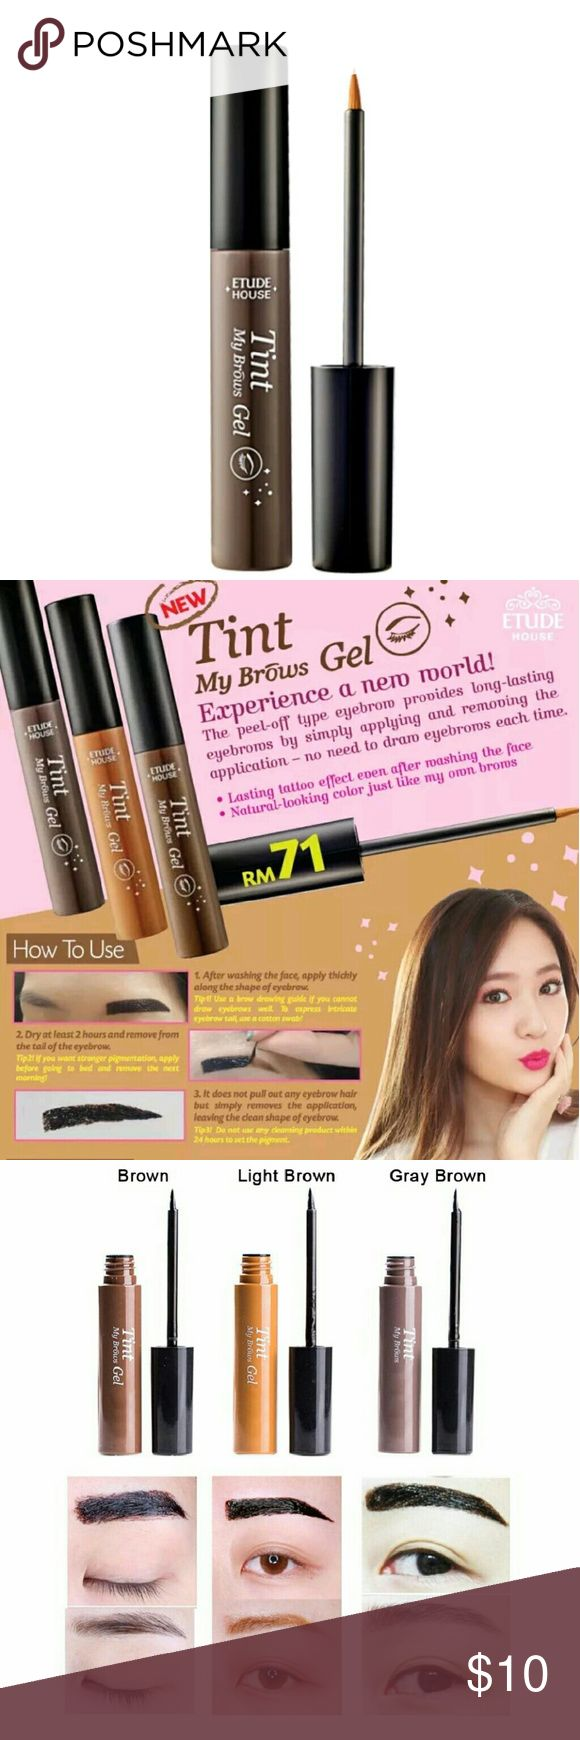 Tint My Brows Eyebrow Peel Off Gel Gray Brown New in box Eyebrow Gel Tint that makes eyebrow makeup last long after removing the tint. You apply the eyebrow gel to your eyebrow, let it set for at least 2 hours, peel off and look amazing! This is the latest beauty craze in Korea.  This listing is for 1 box of peel off eyebrow tint in Gray Brown #3. See photos for color swatch.  Great addition to your bundle! etude house Makeup Eyebrow Filler